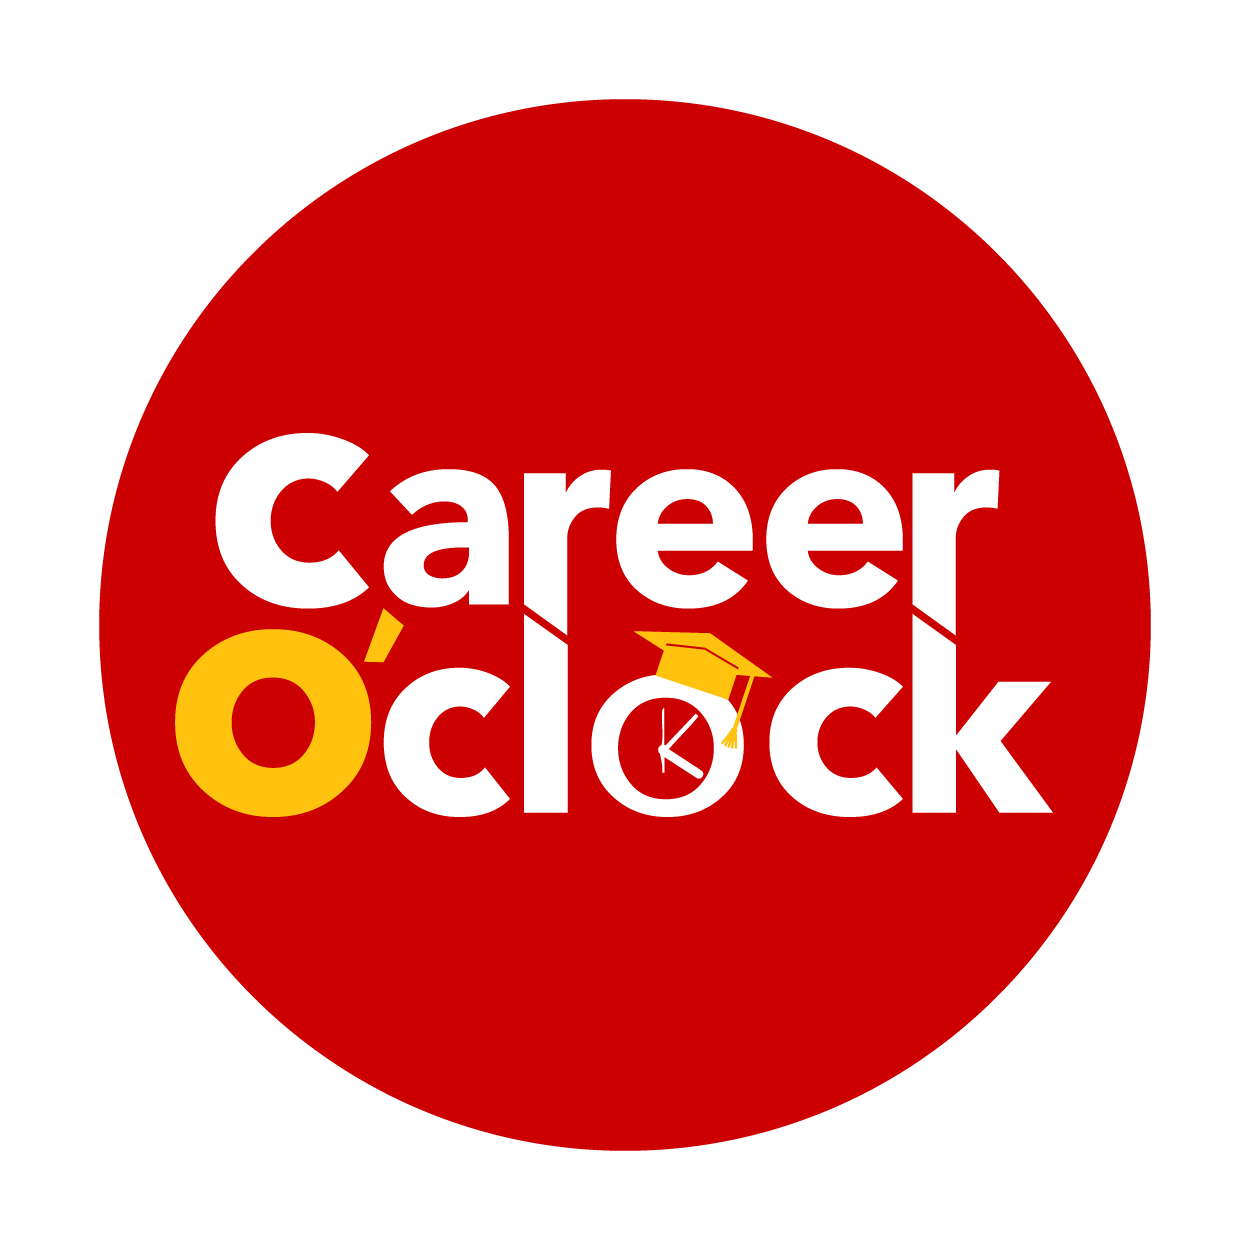 Career O'clock